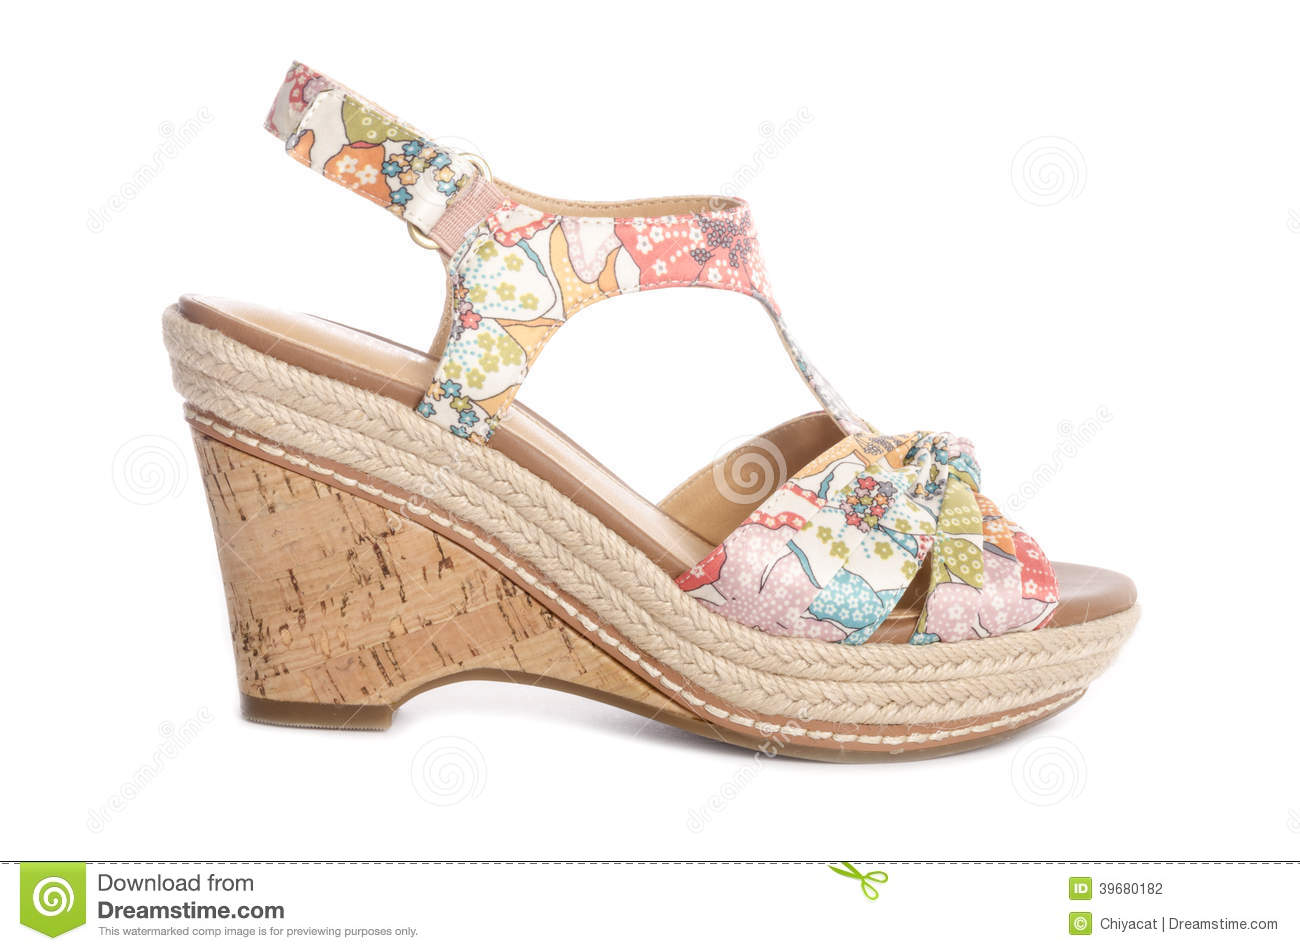 e199283b65ac4d Floral Wedge Sandals  6 stock photo. Image of floral - 39680182